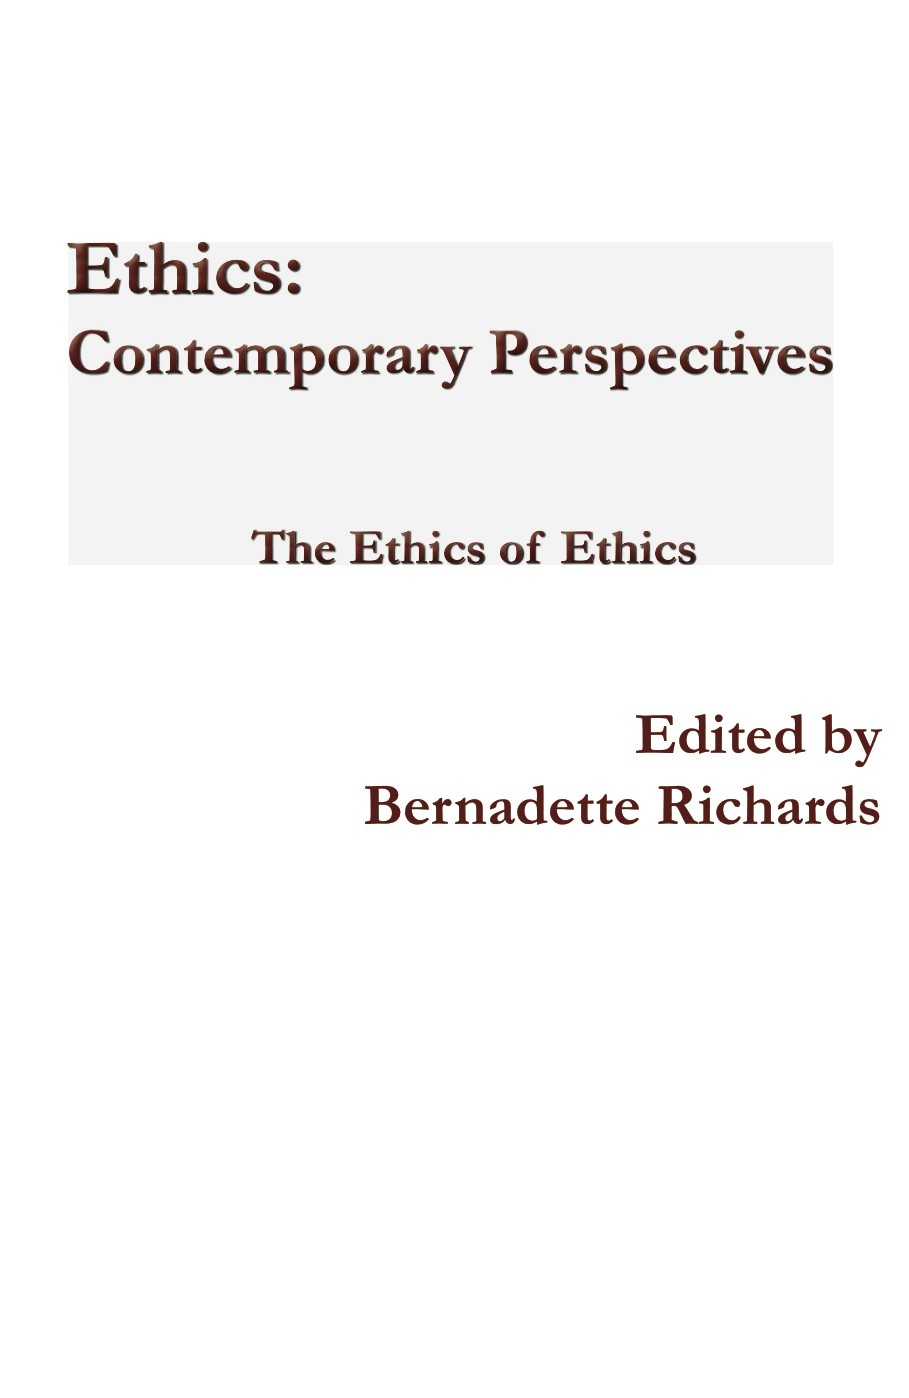 Ethics: Contemporary Perspectives (PDF)